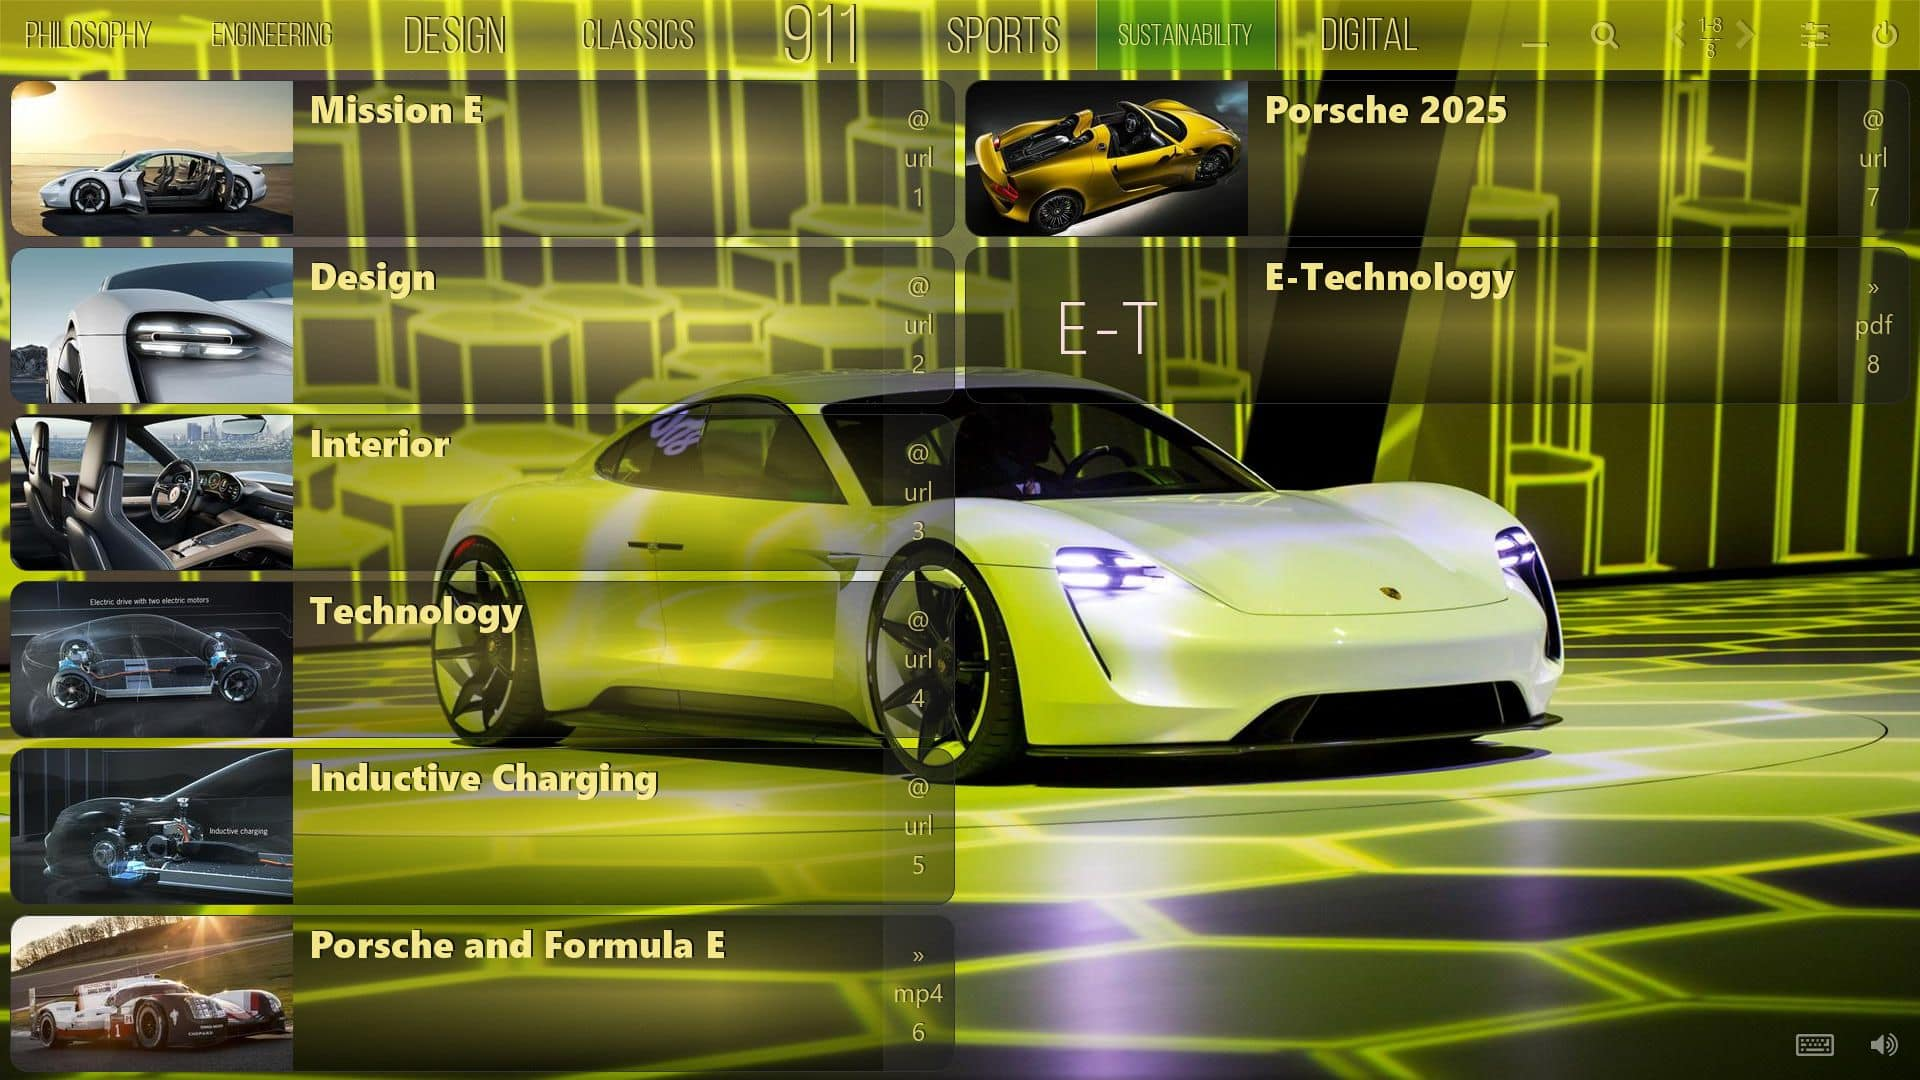 Mediaboard Content Package - About Porsche Sustainability